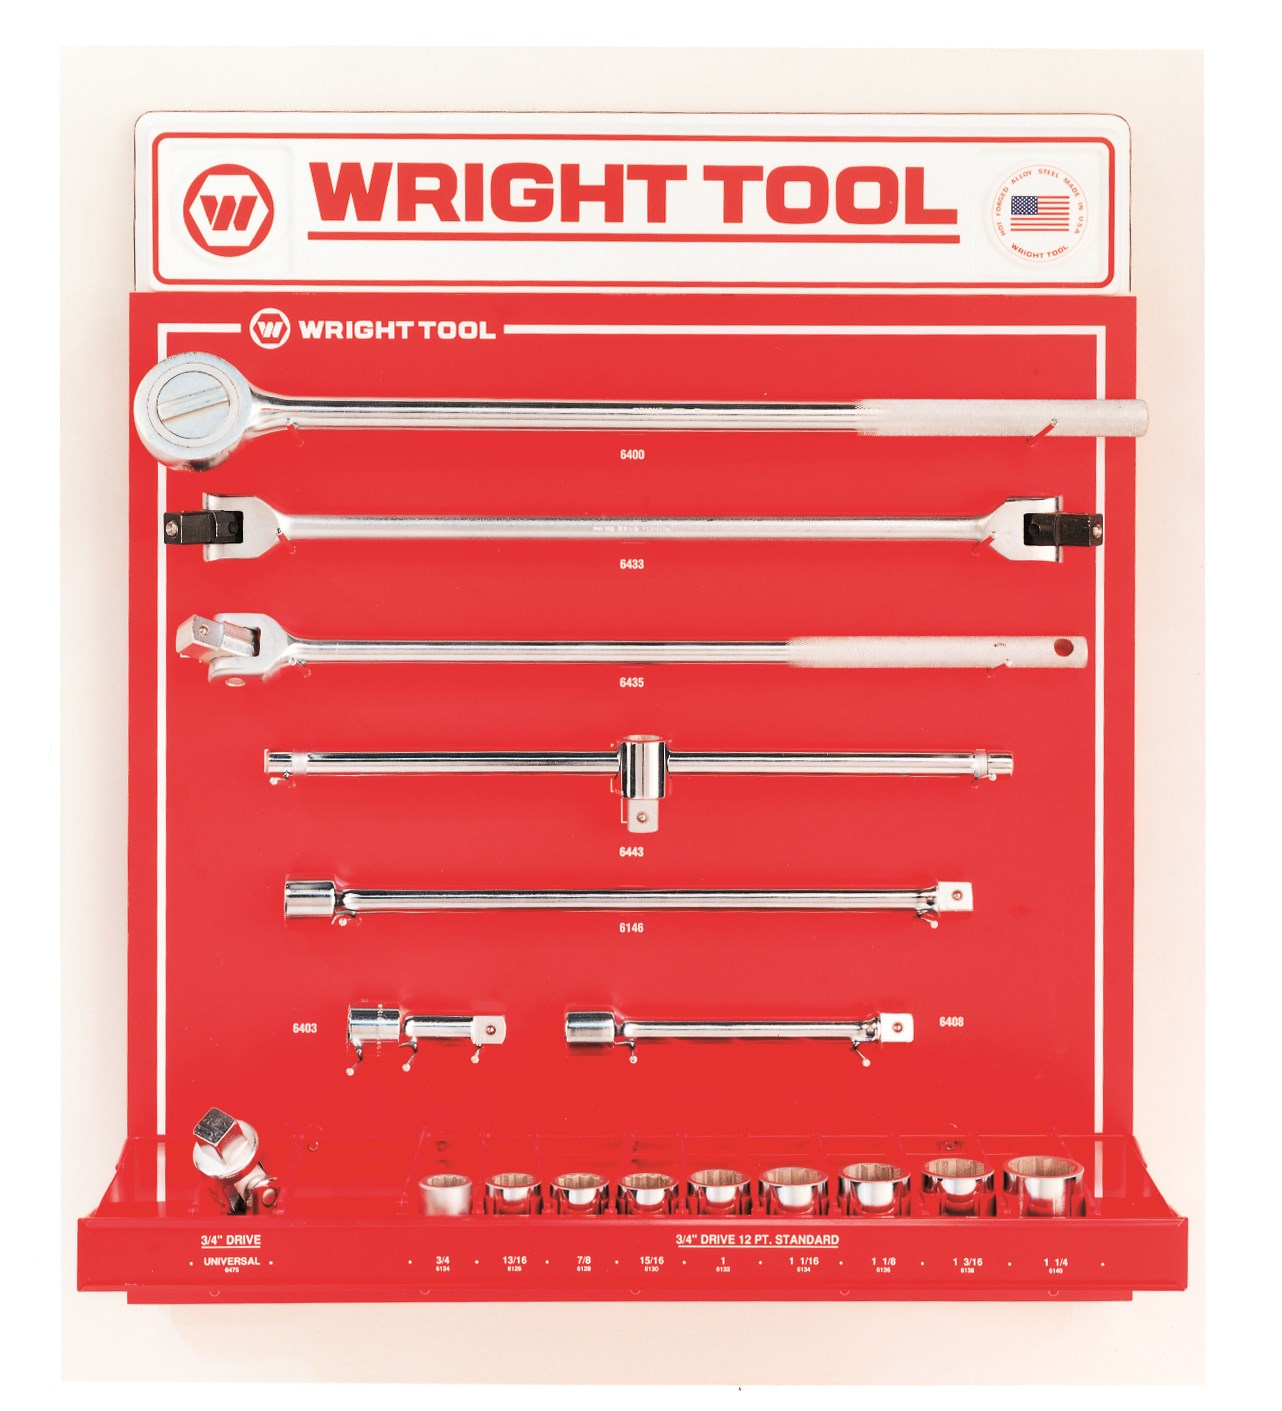 Wright Tool D949 16 Piece 3/4-inch Drive 12-Point Sockets, Handles & Attachments